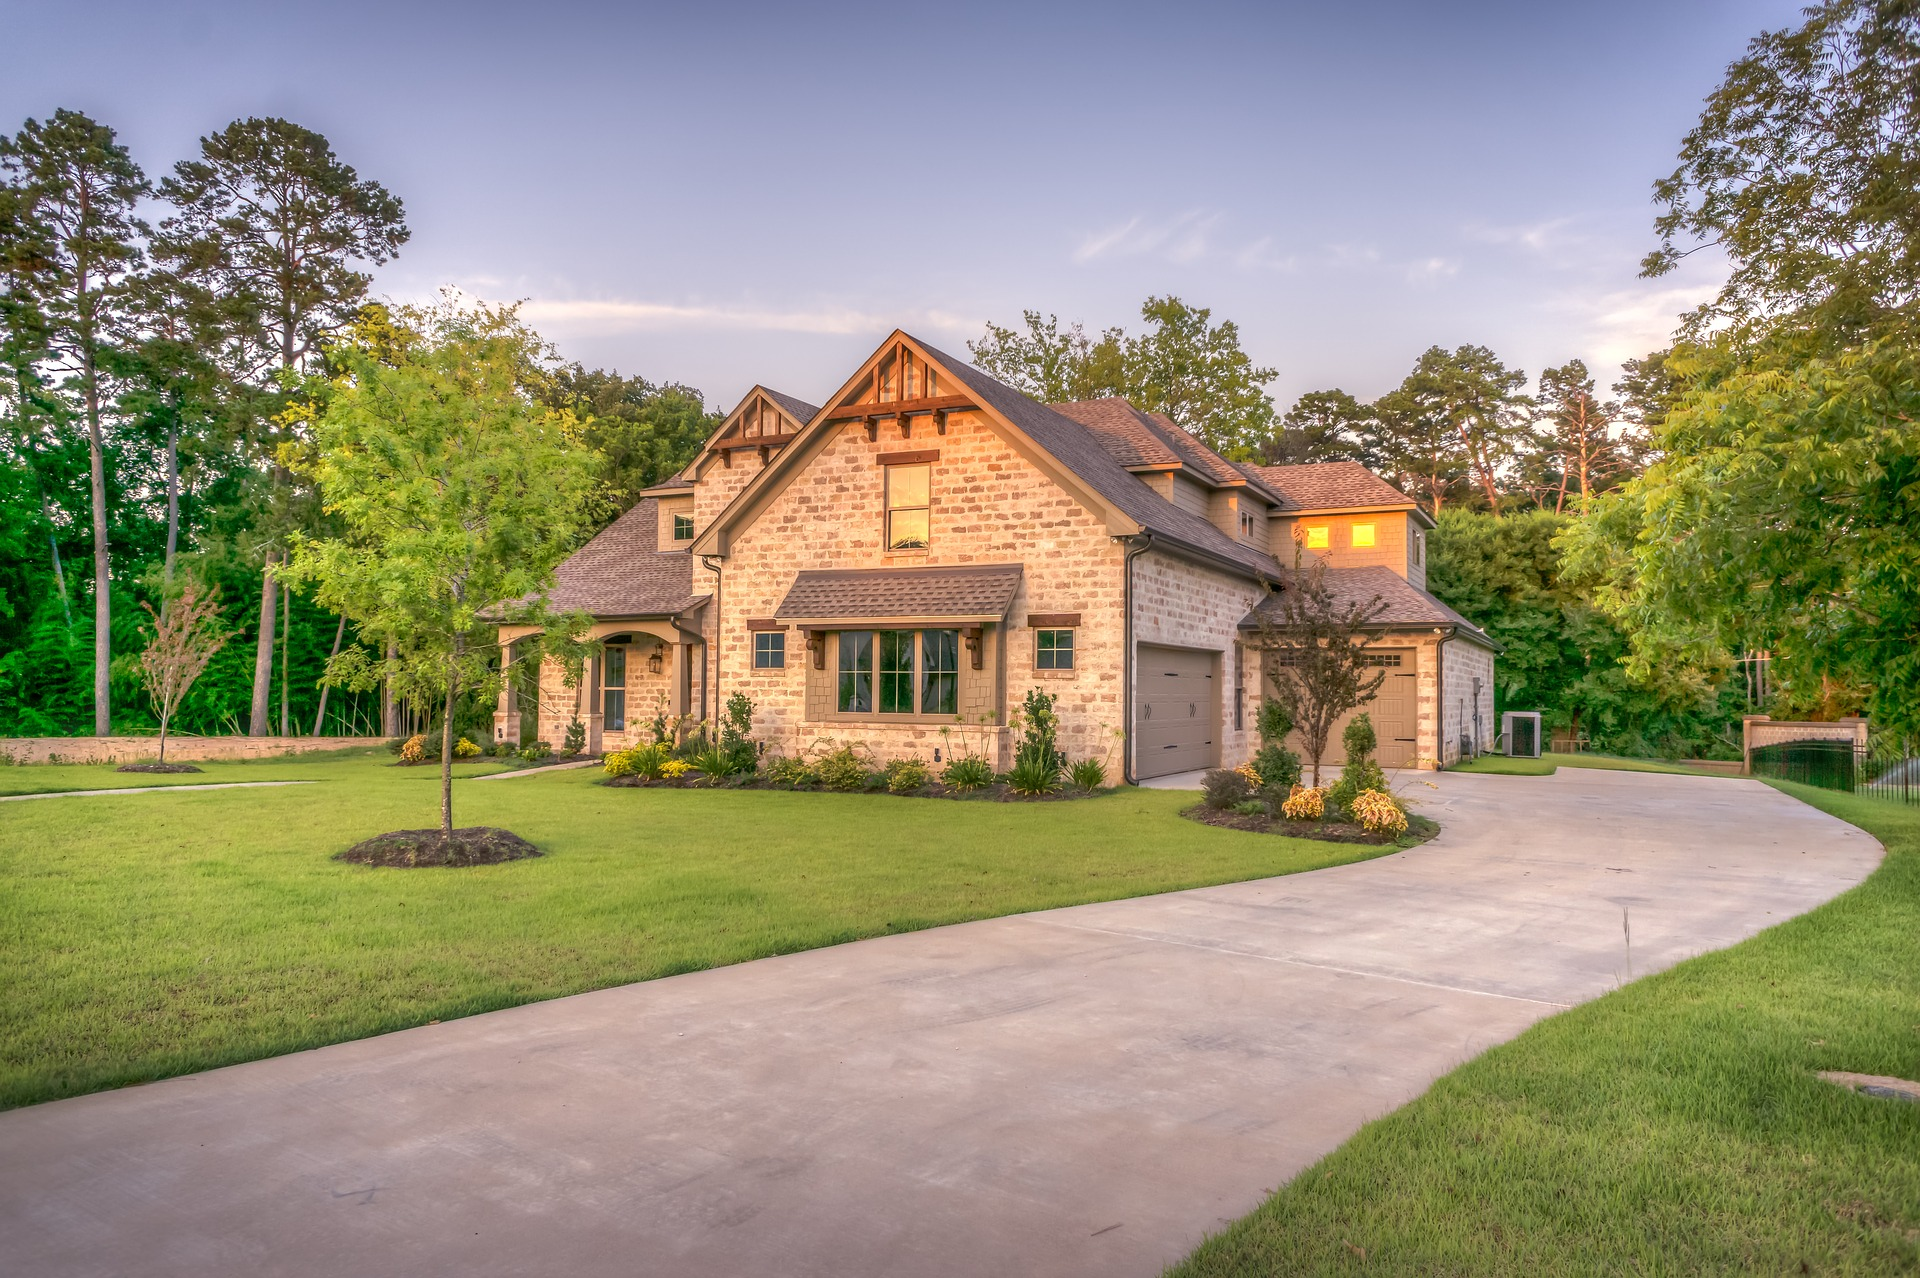 Cleaning tips for instantly improving curb appeal